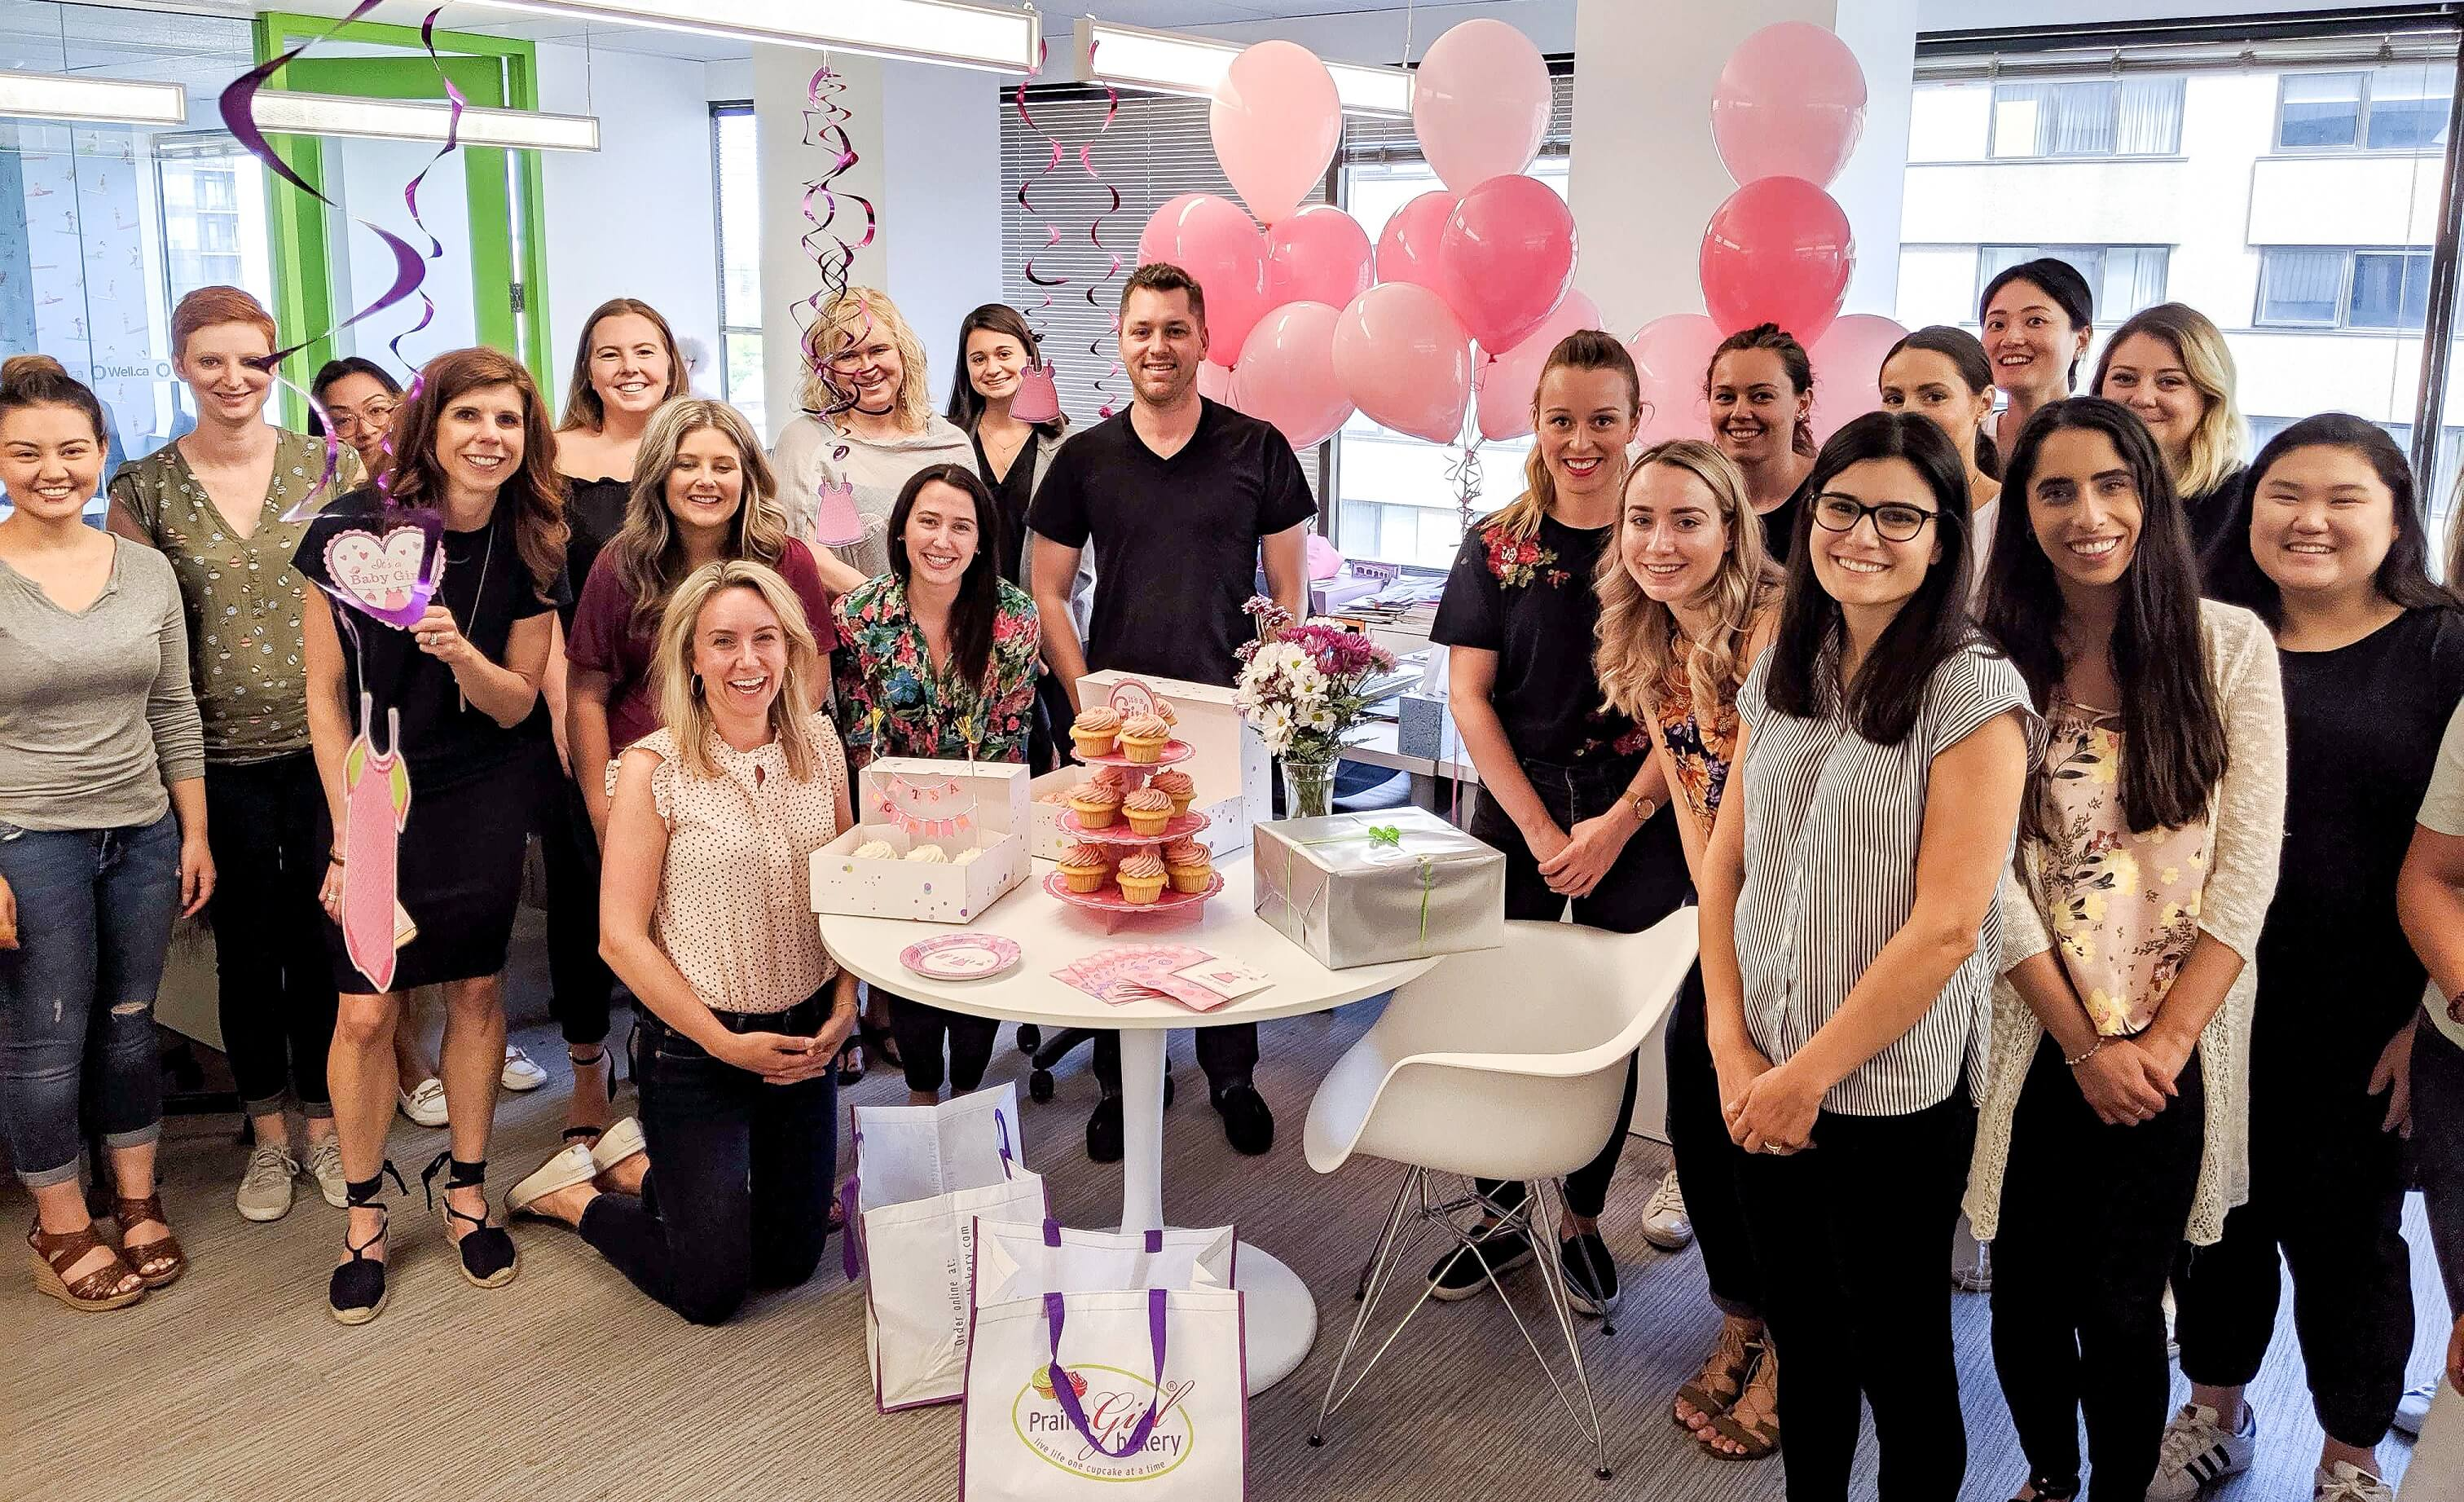 Baby shower with pink balloons